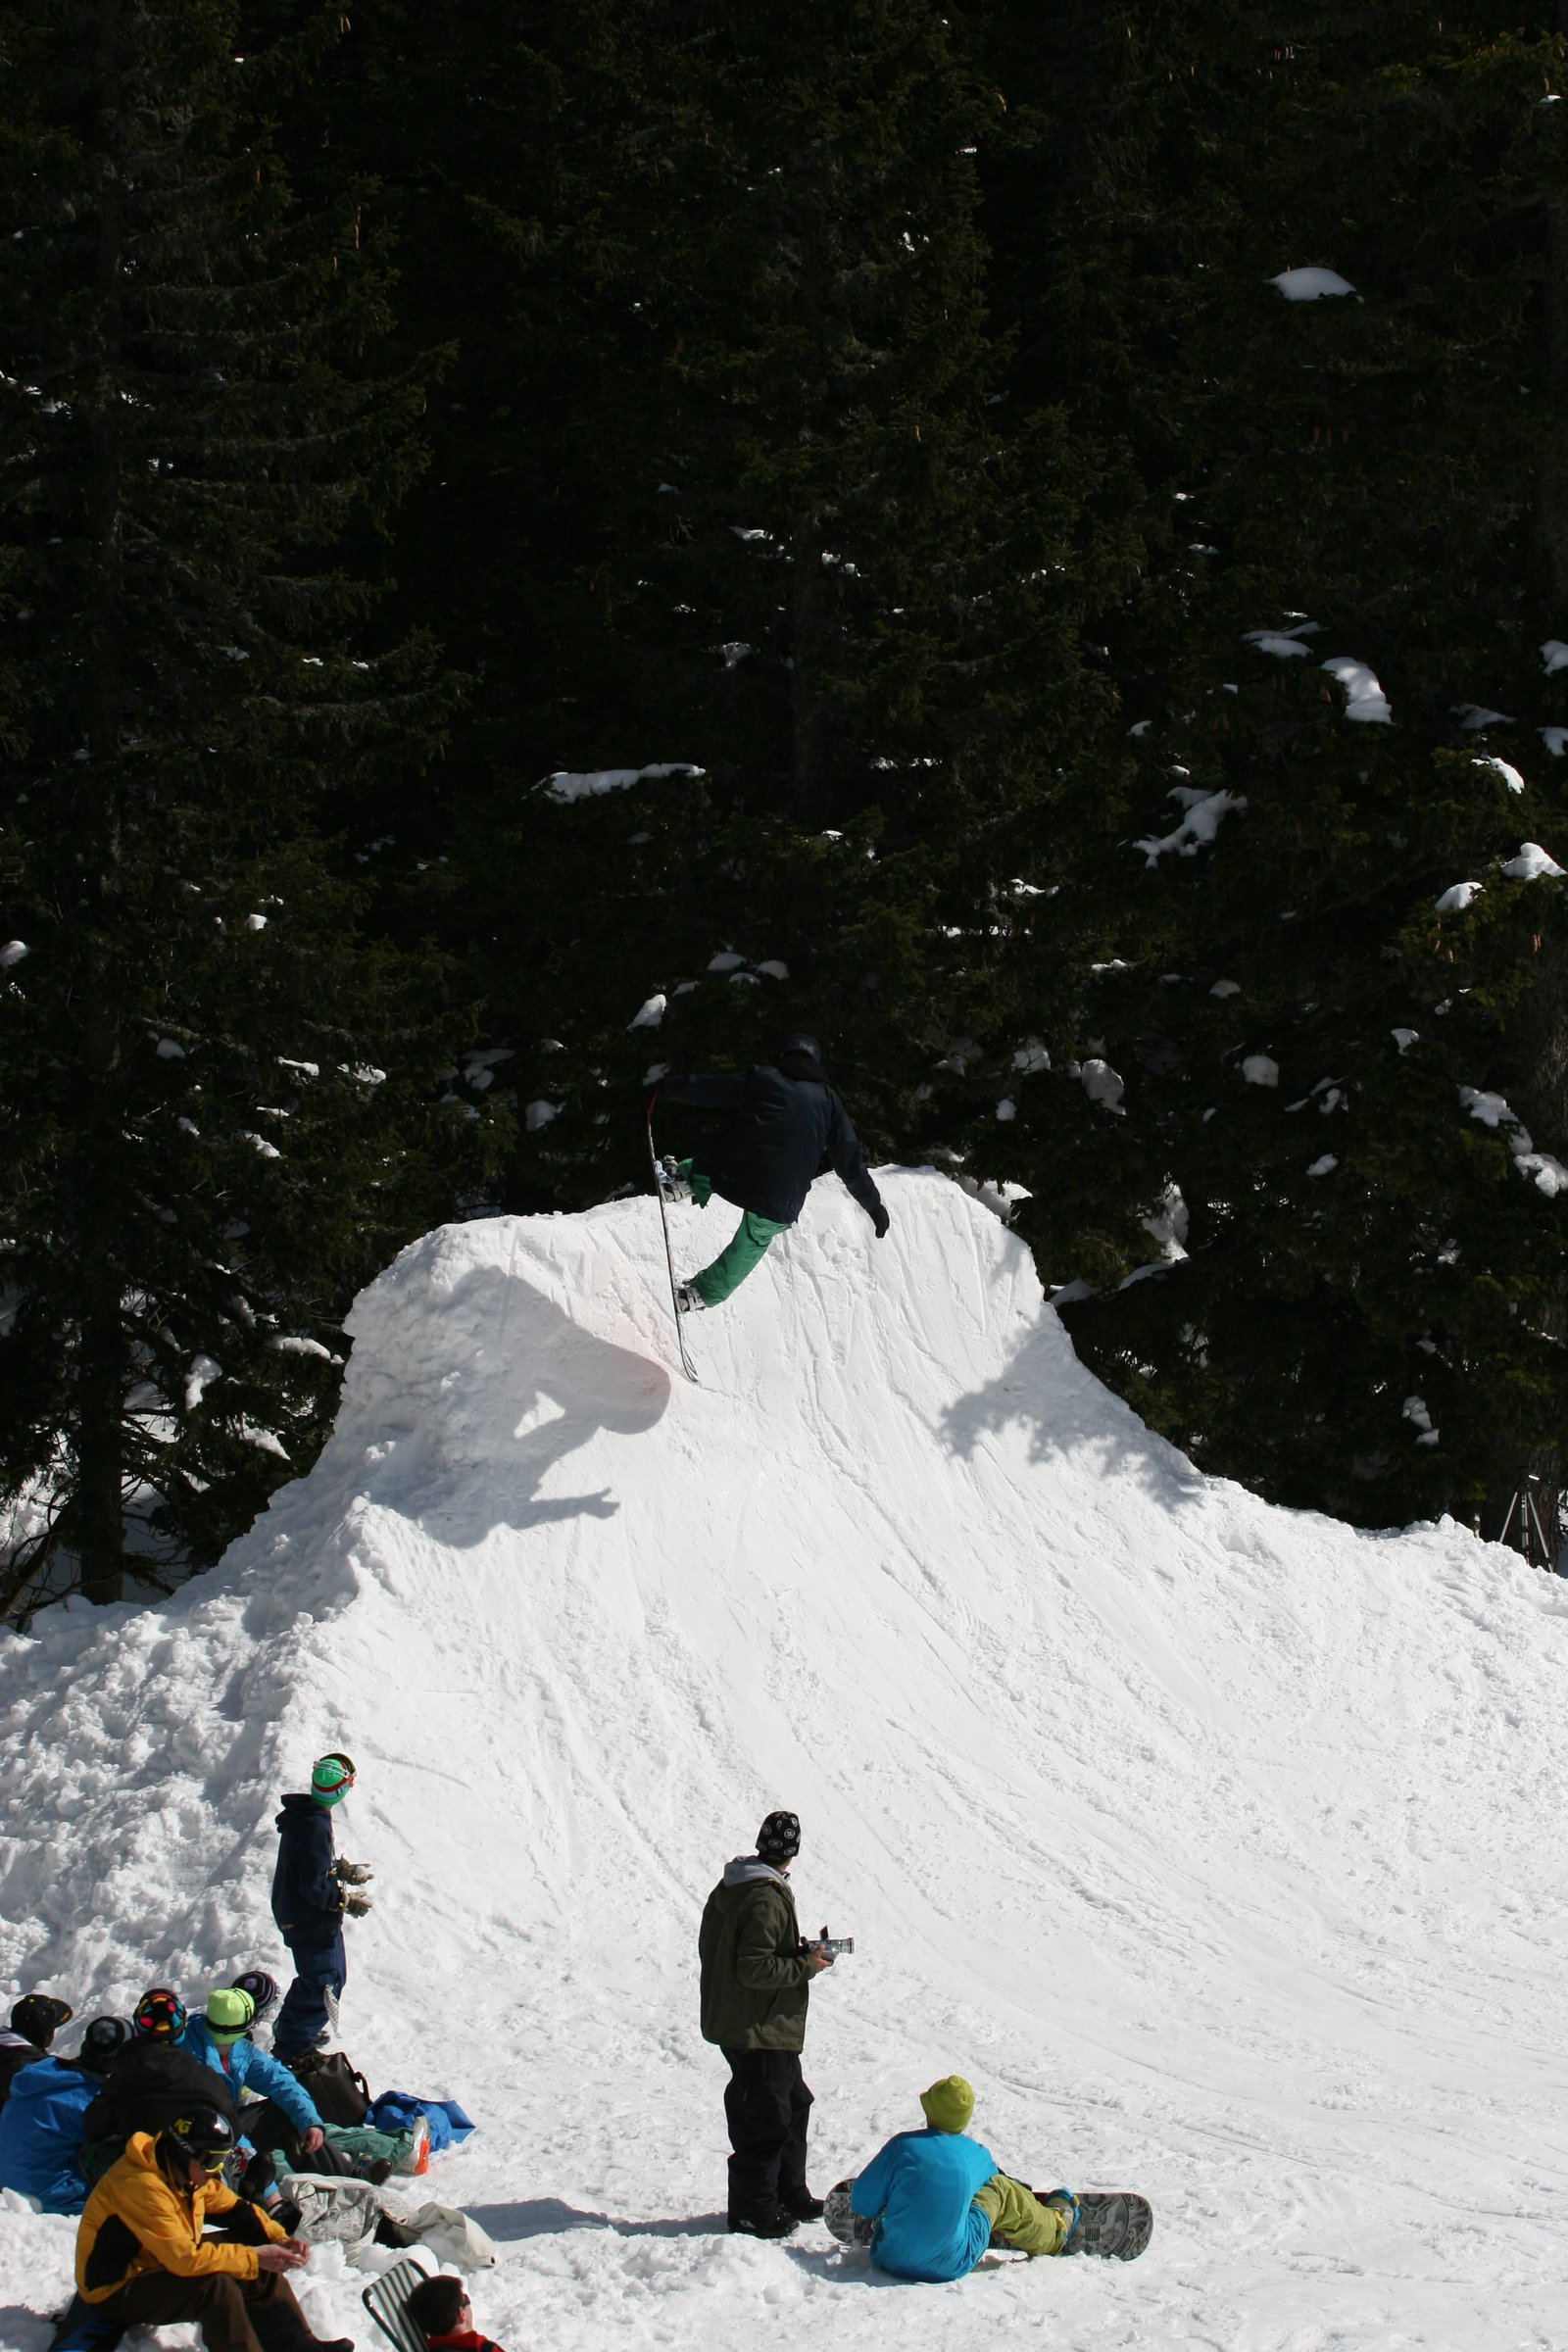 Snowboard tipstand